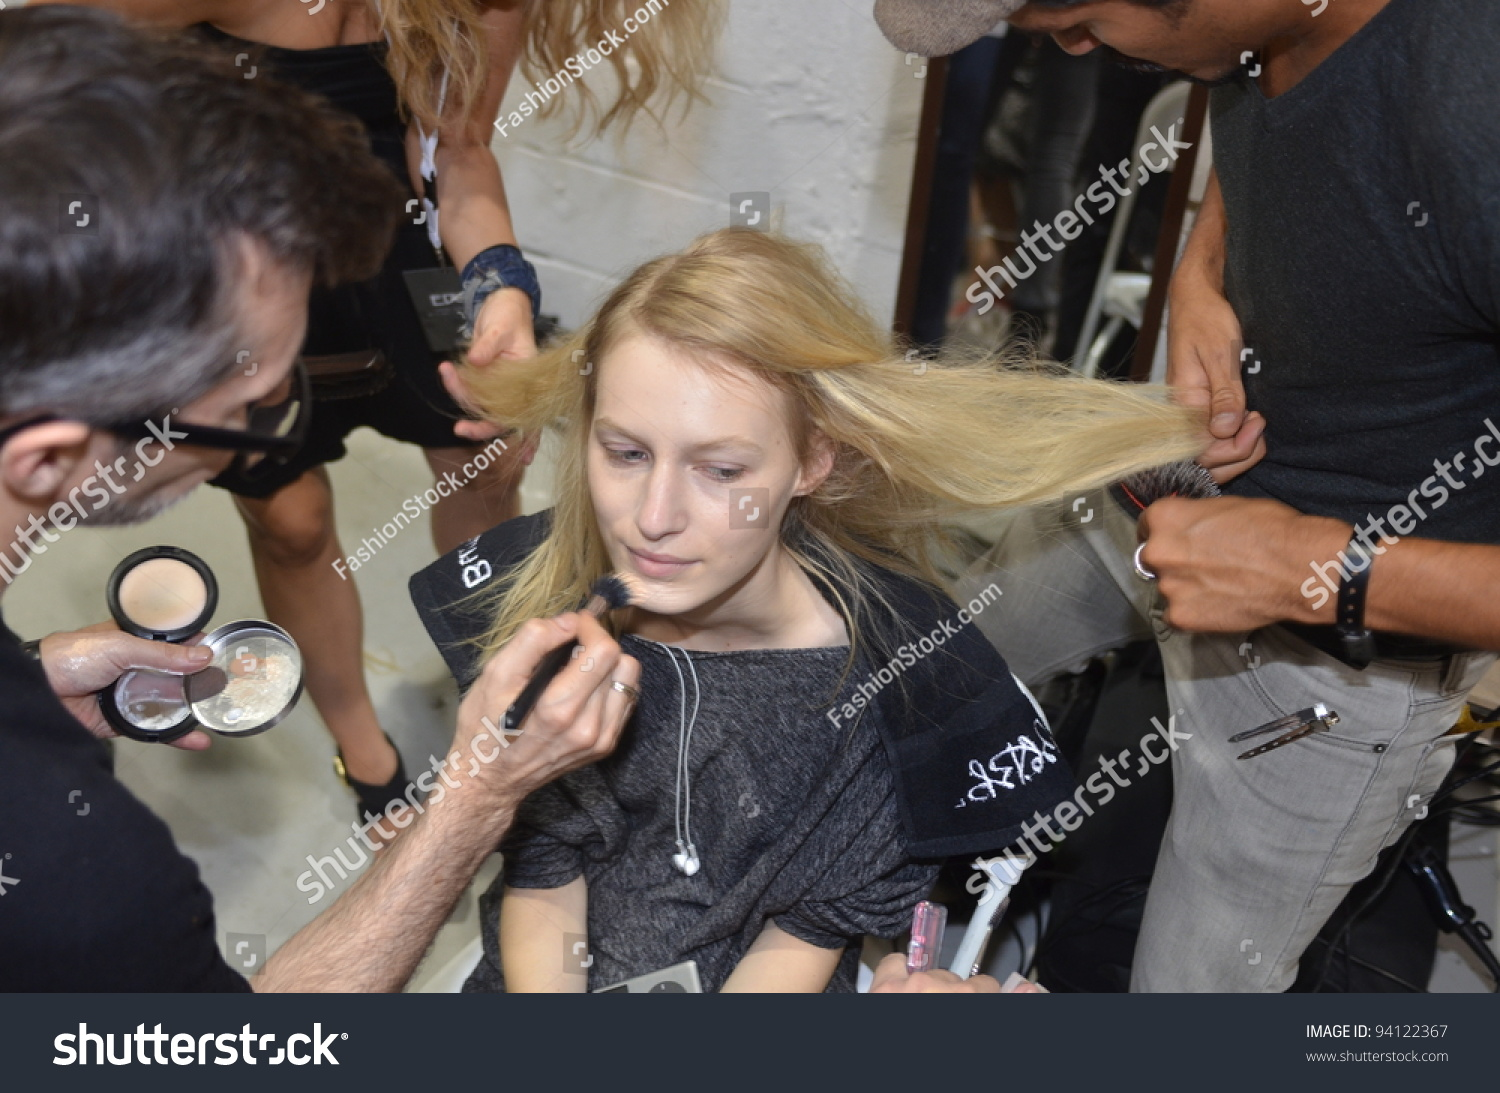 Beauty backstage edun spring